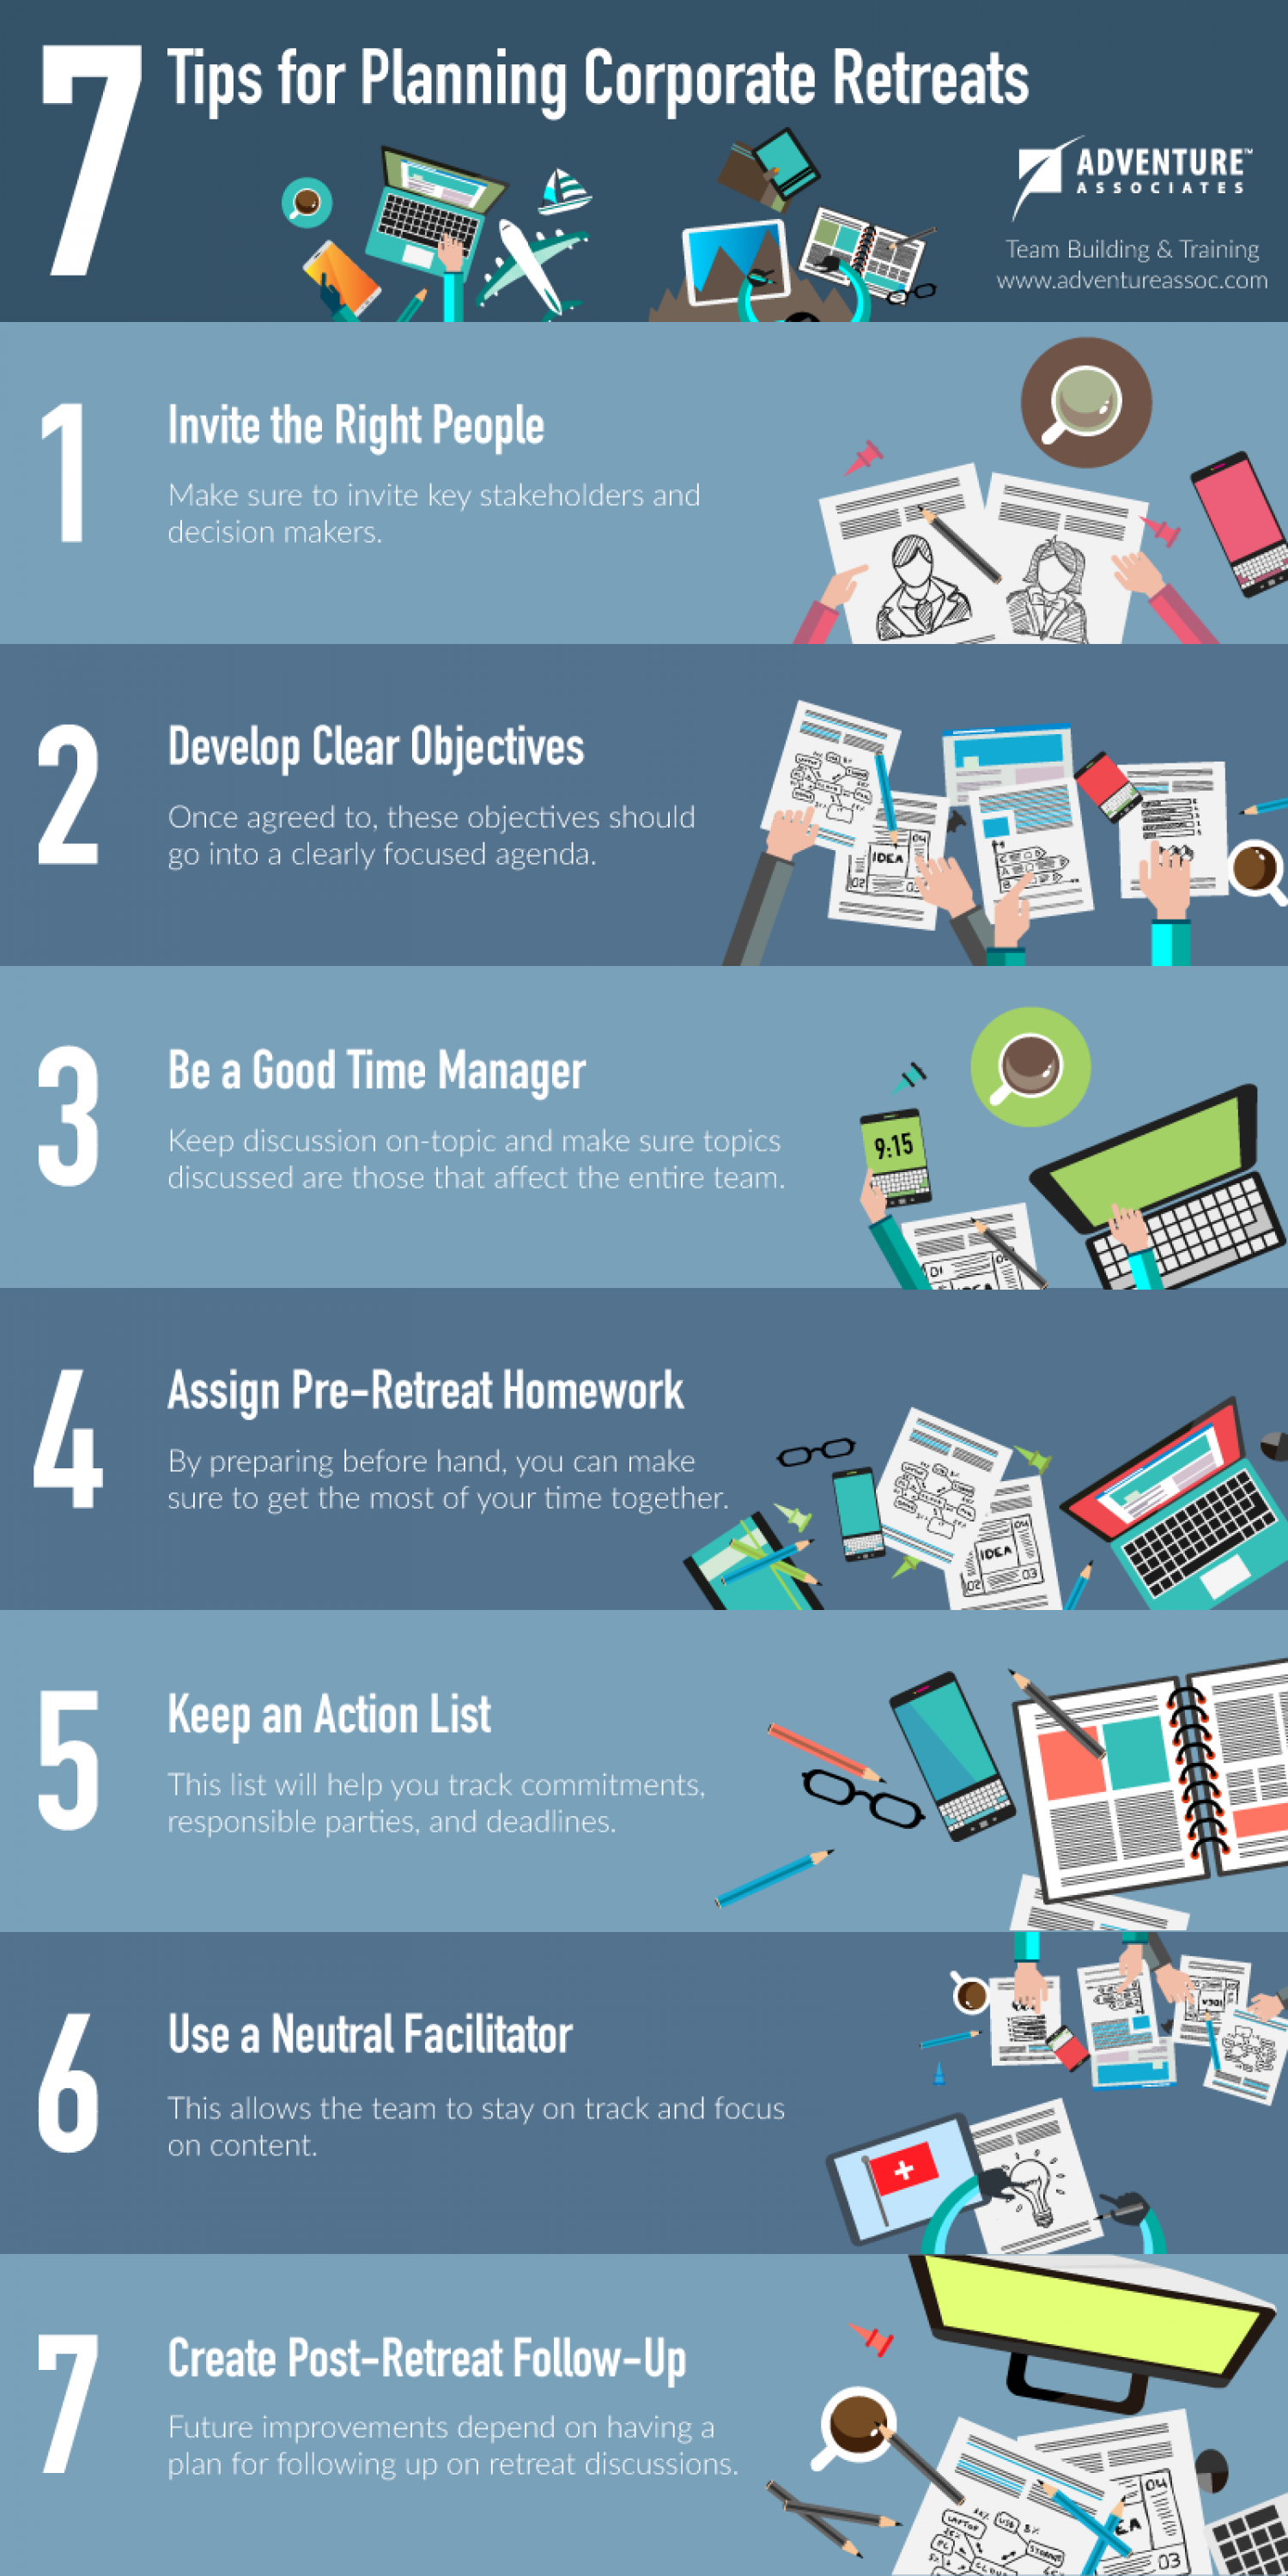 7 Tips for Planning a Corporate Retreat Infographic